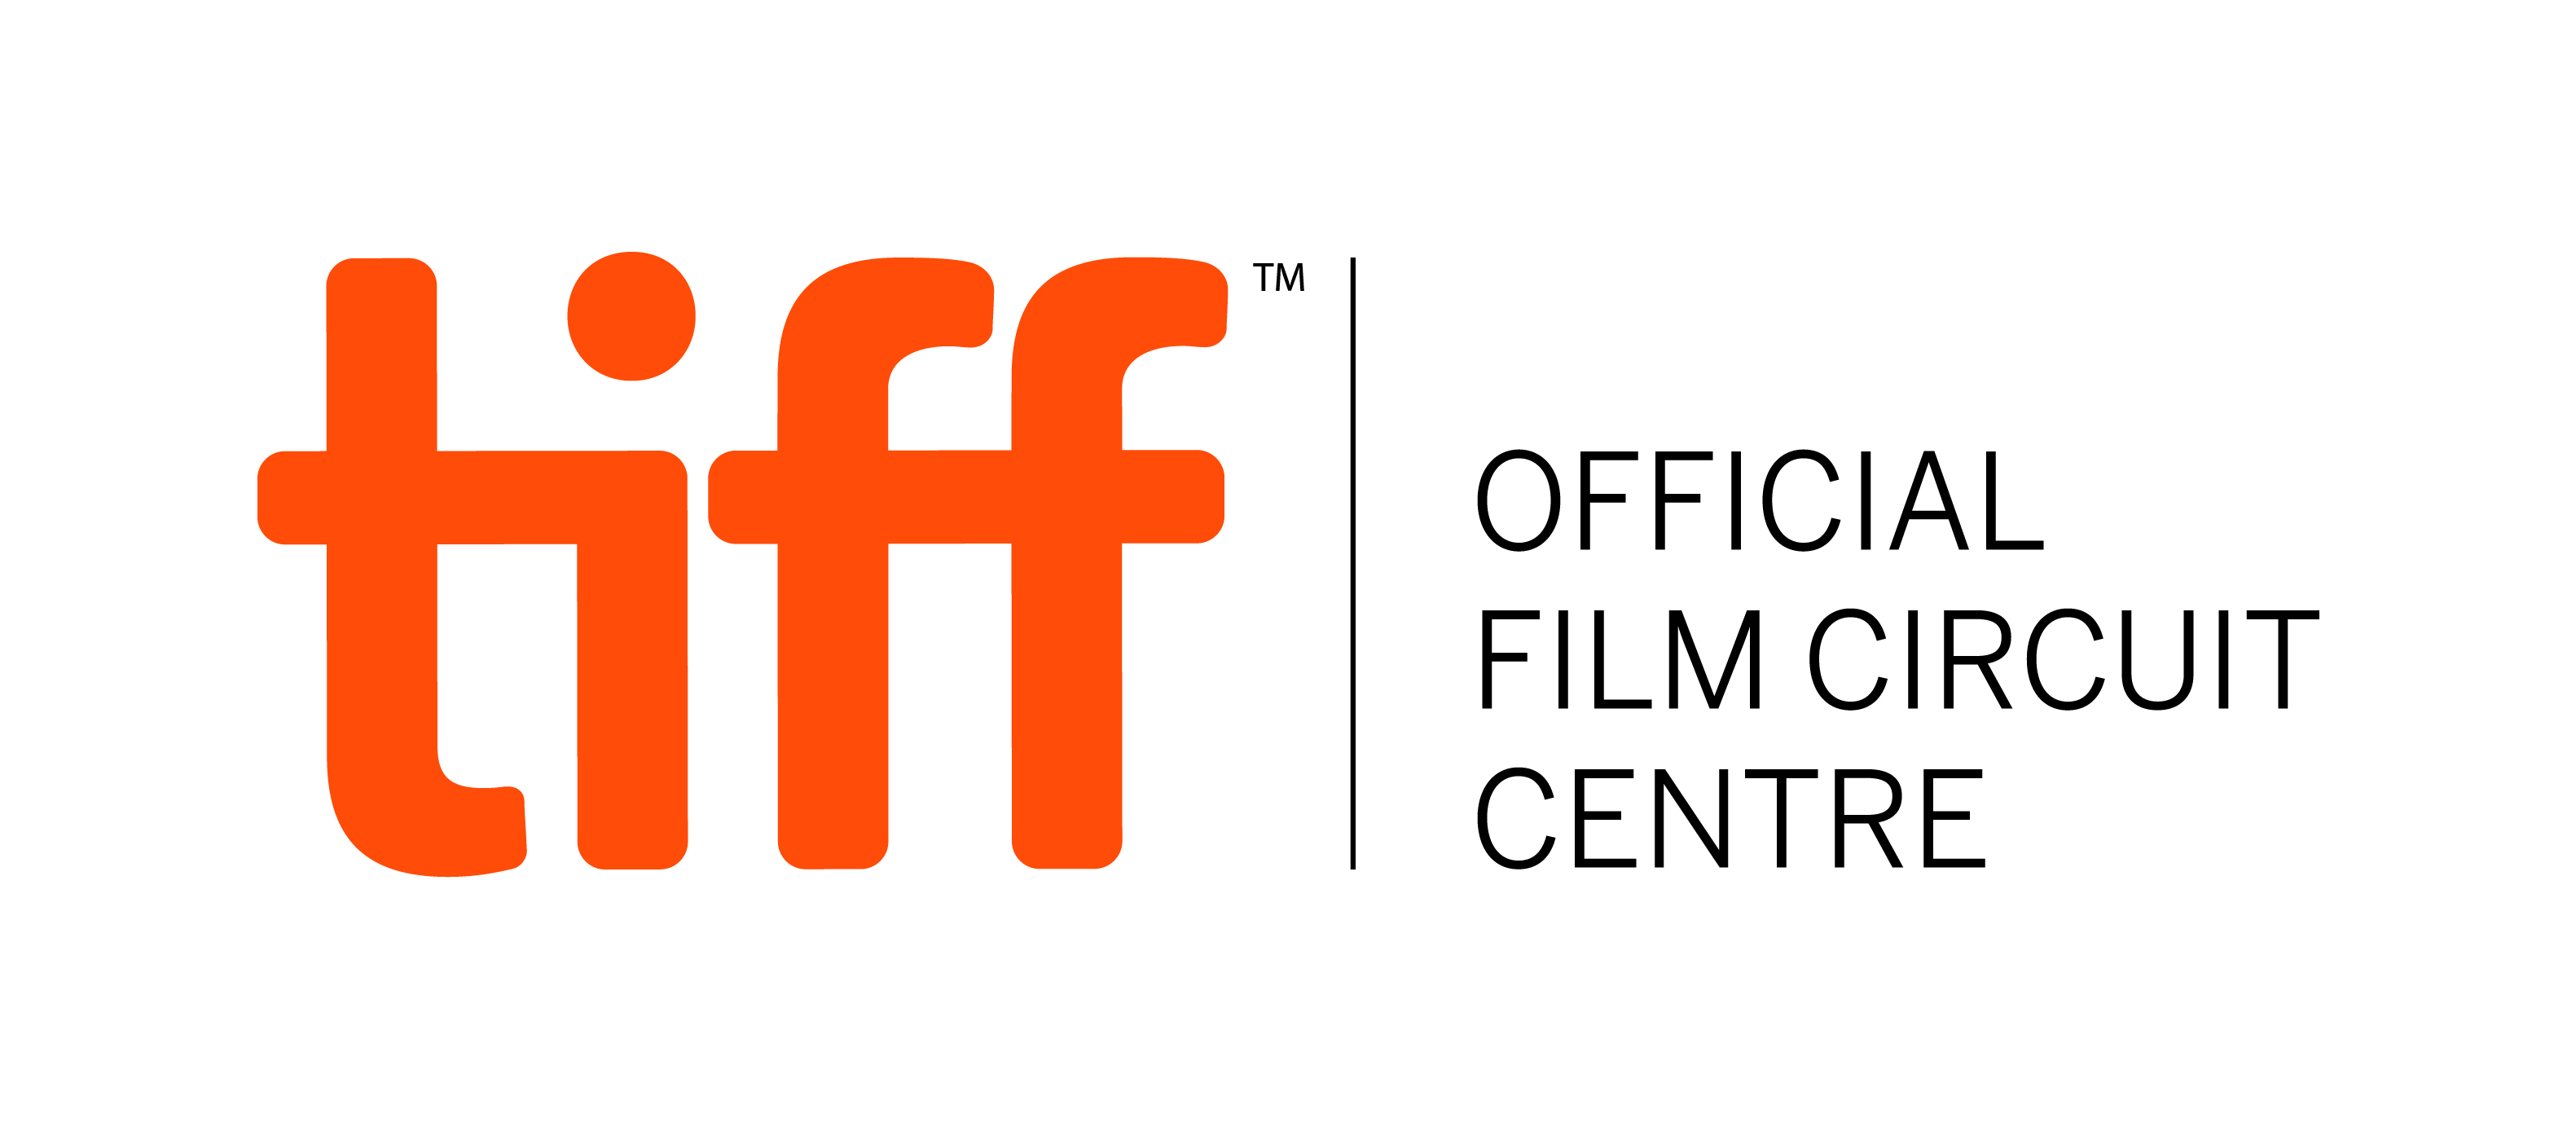 Film Circuit Supporters Lunenburg County Series Closed